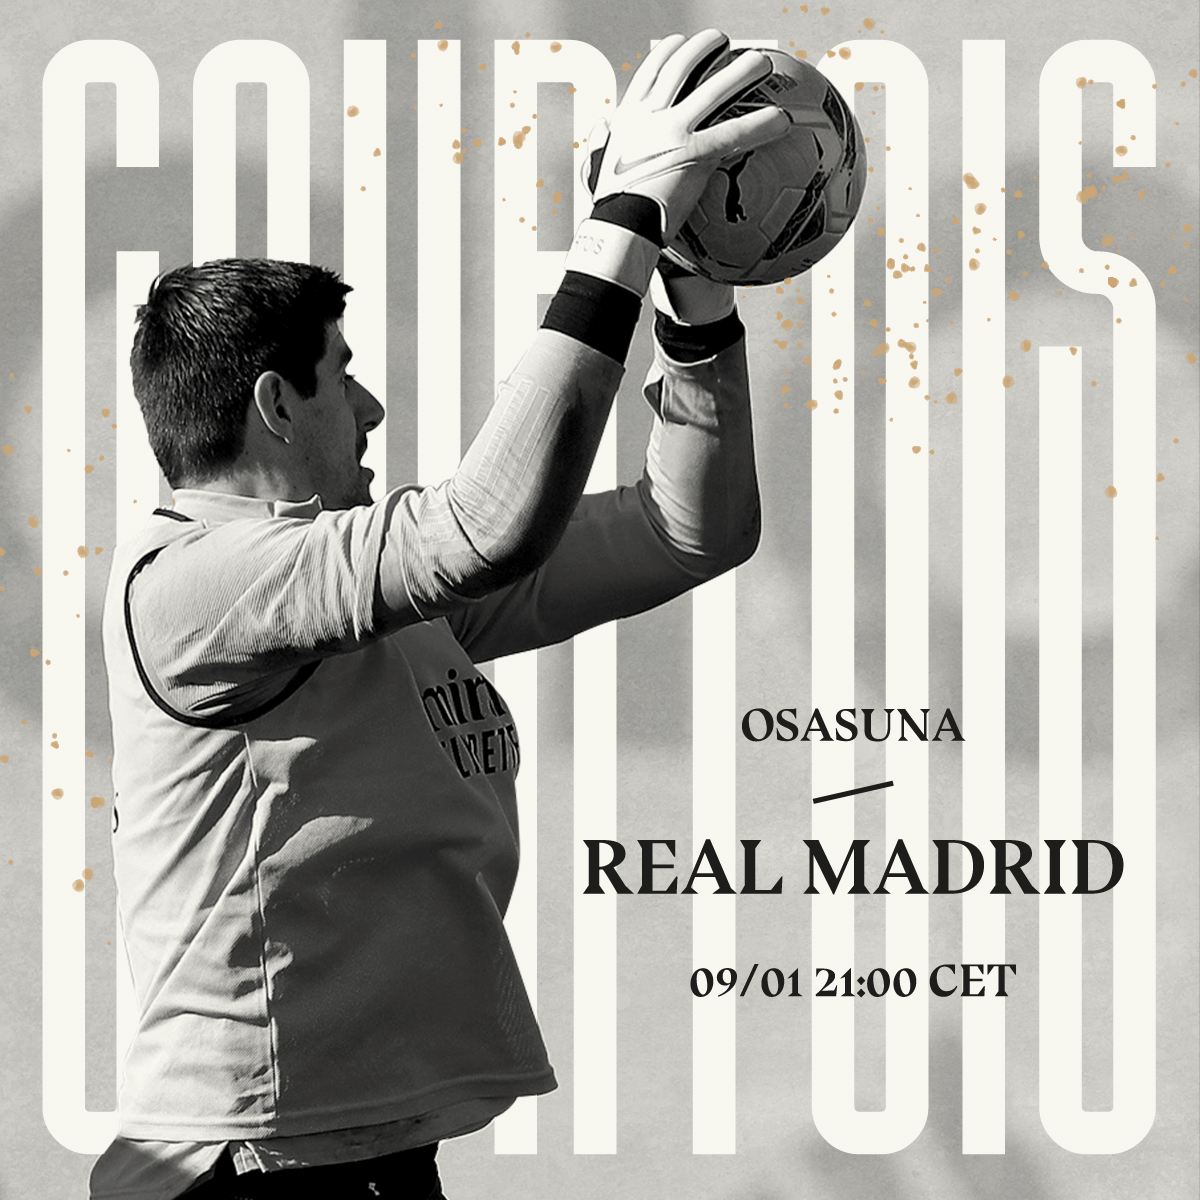 Matchday 18! We're well prepared for tonight. 👊🏻 #HalaMadrid